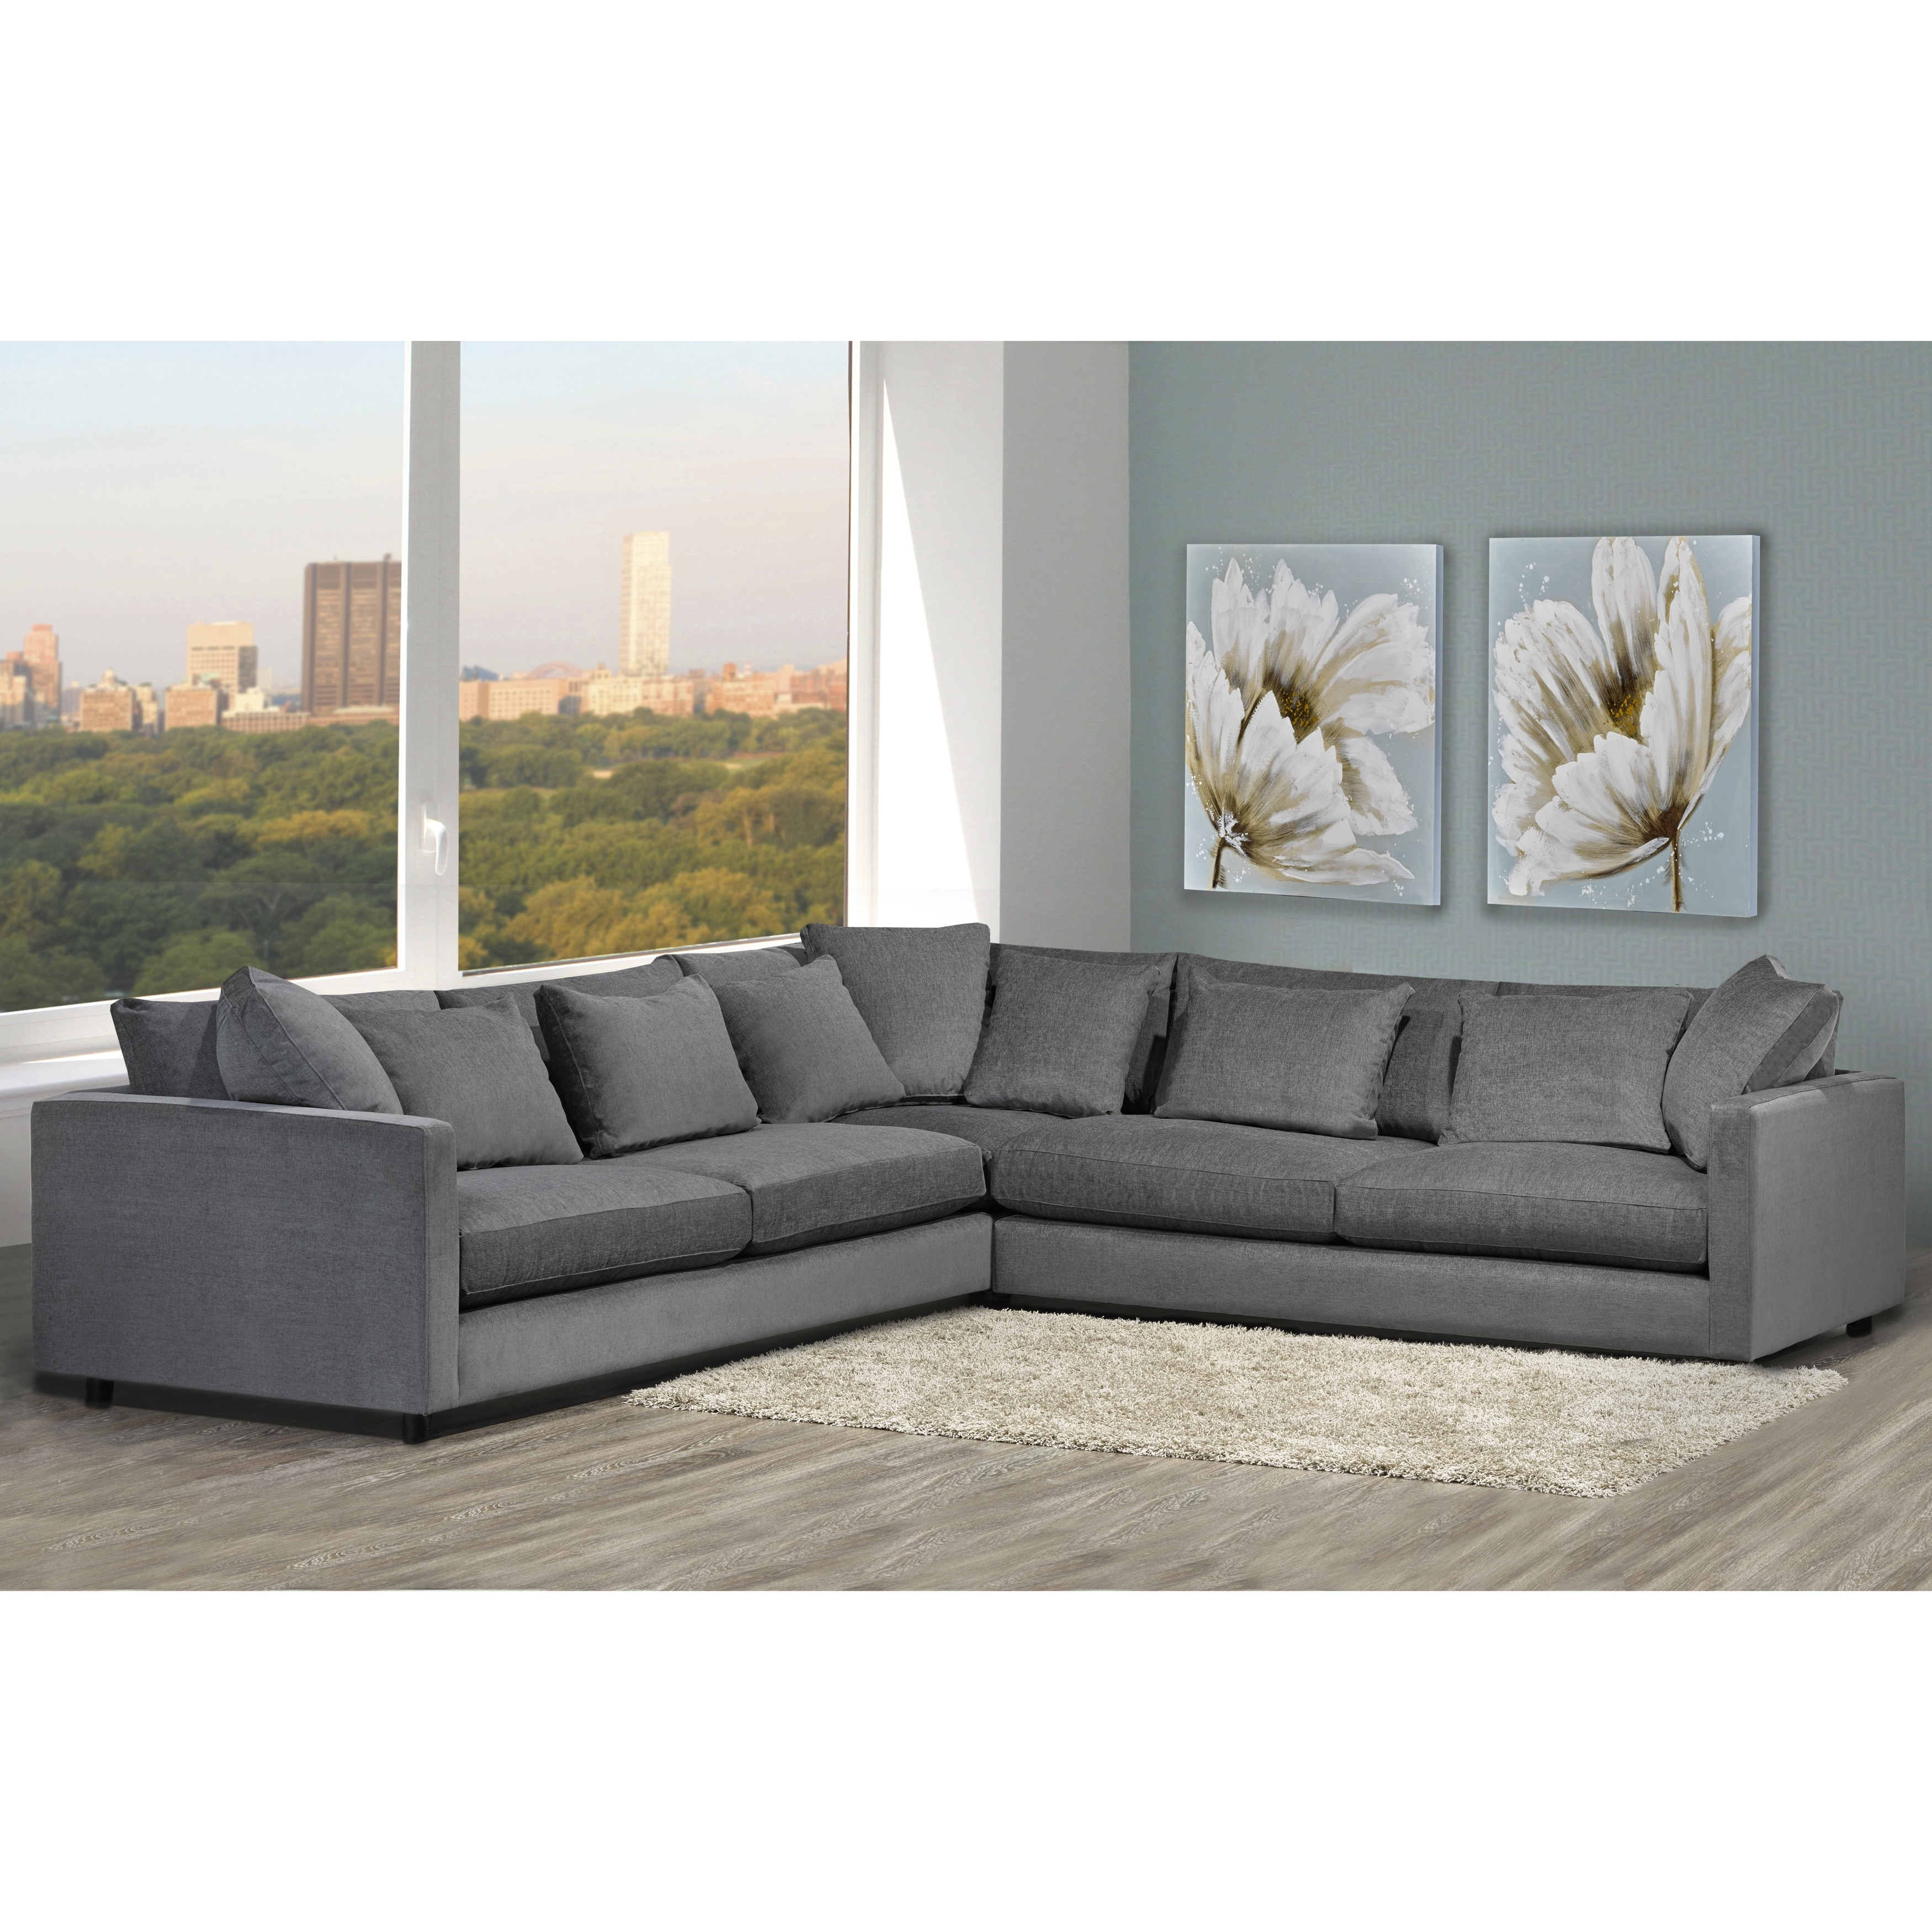 Made To Order Modern Lounge Down Filled Grey Fabric Sectional Sofa In Trendy Down Feather Sectional Sofas (View 13 of 20)